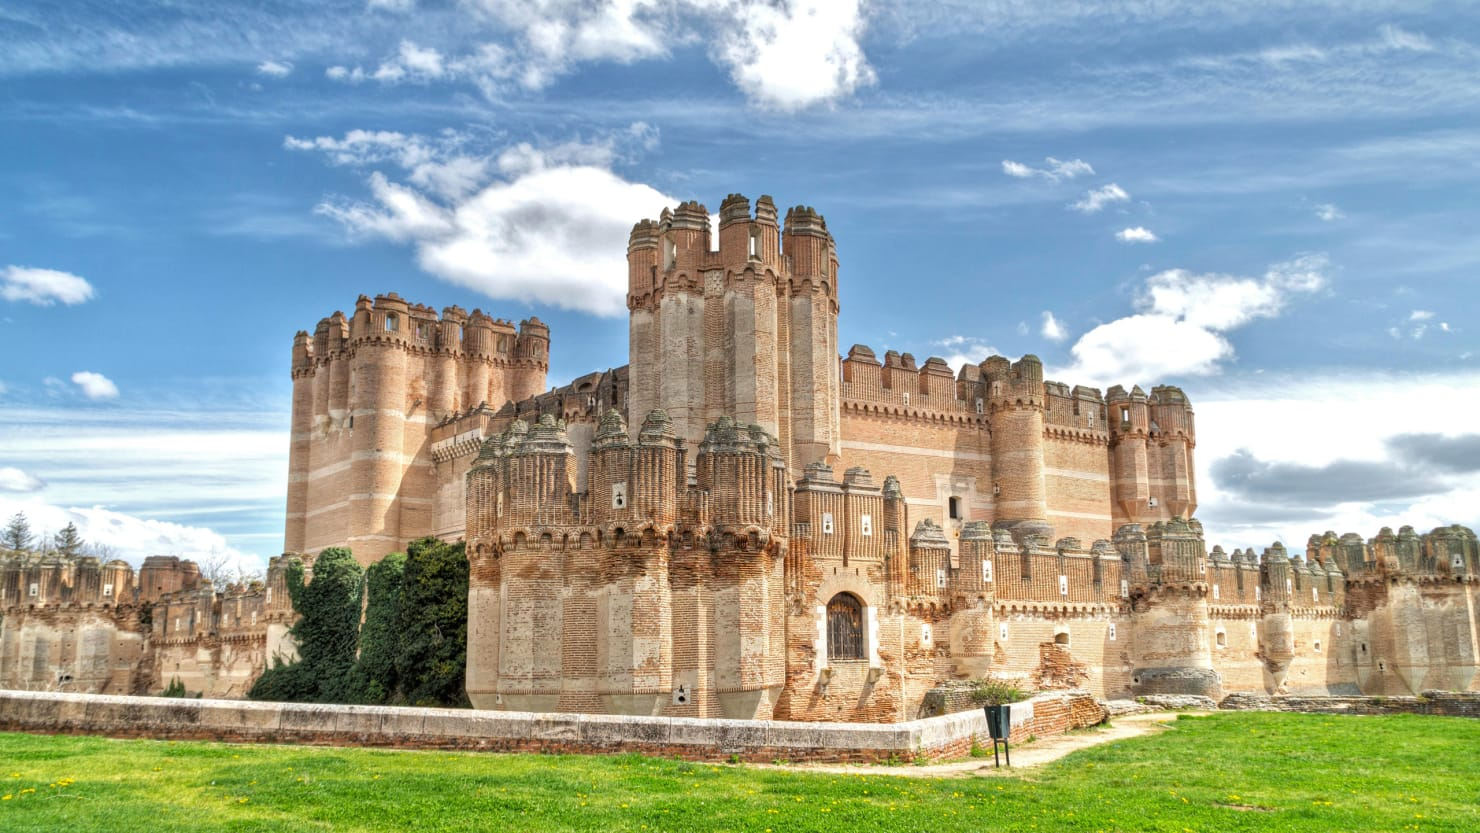 THE DAILY BEAST: Your Ultimate Guide to Spain's Fairy Tale Castles